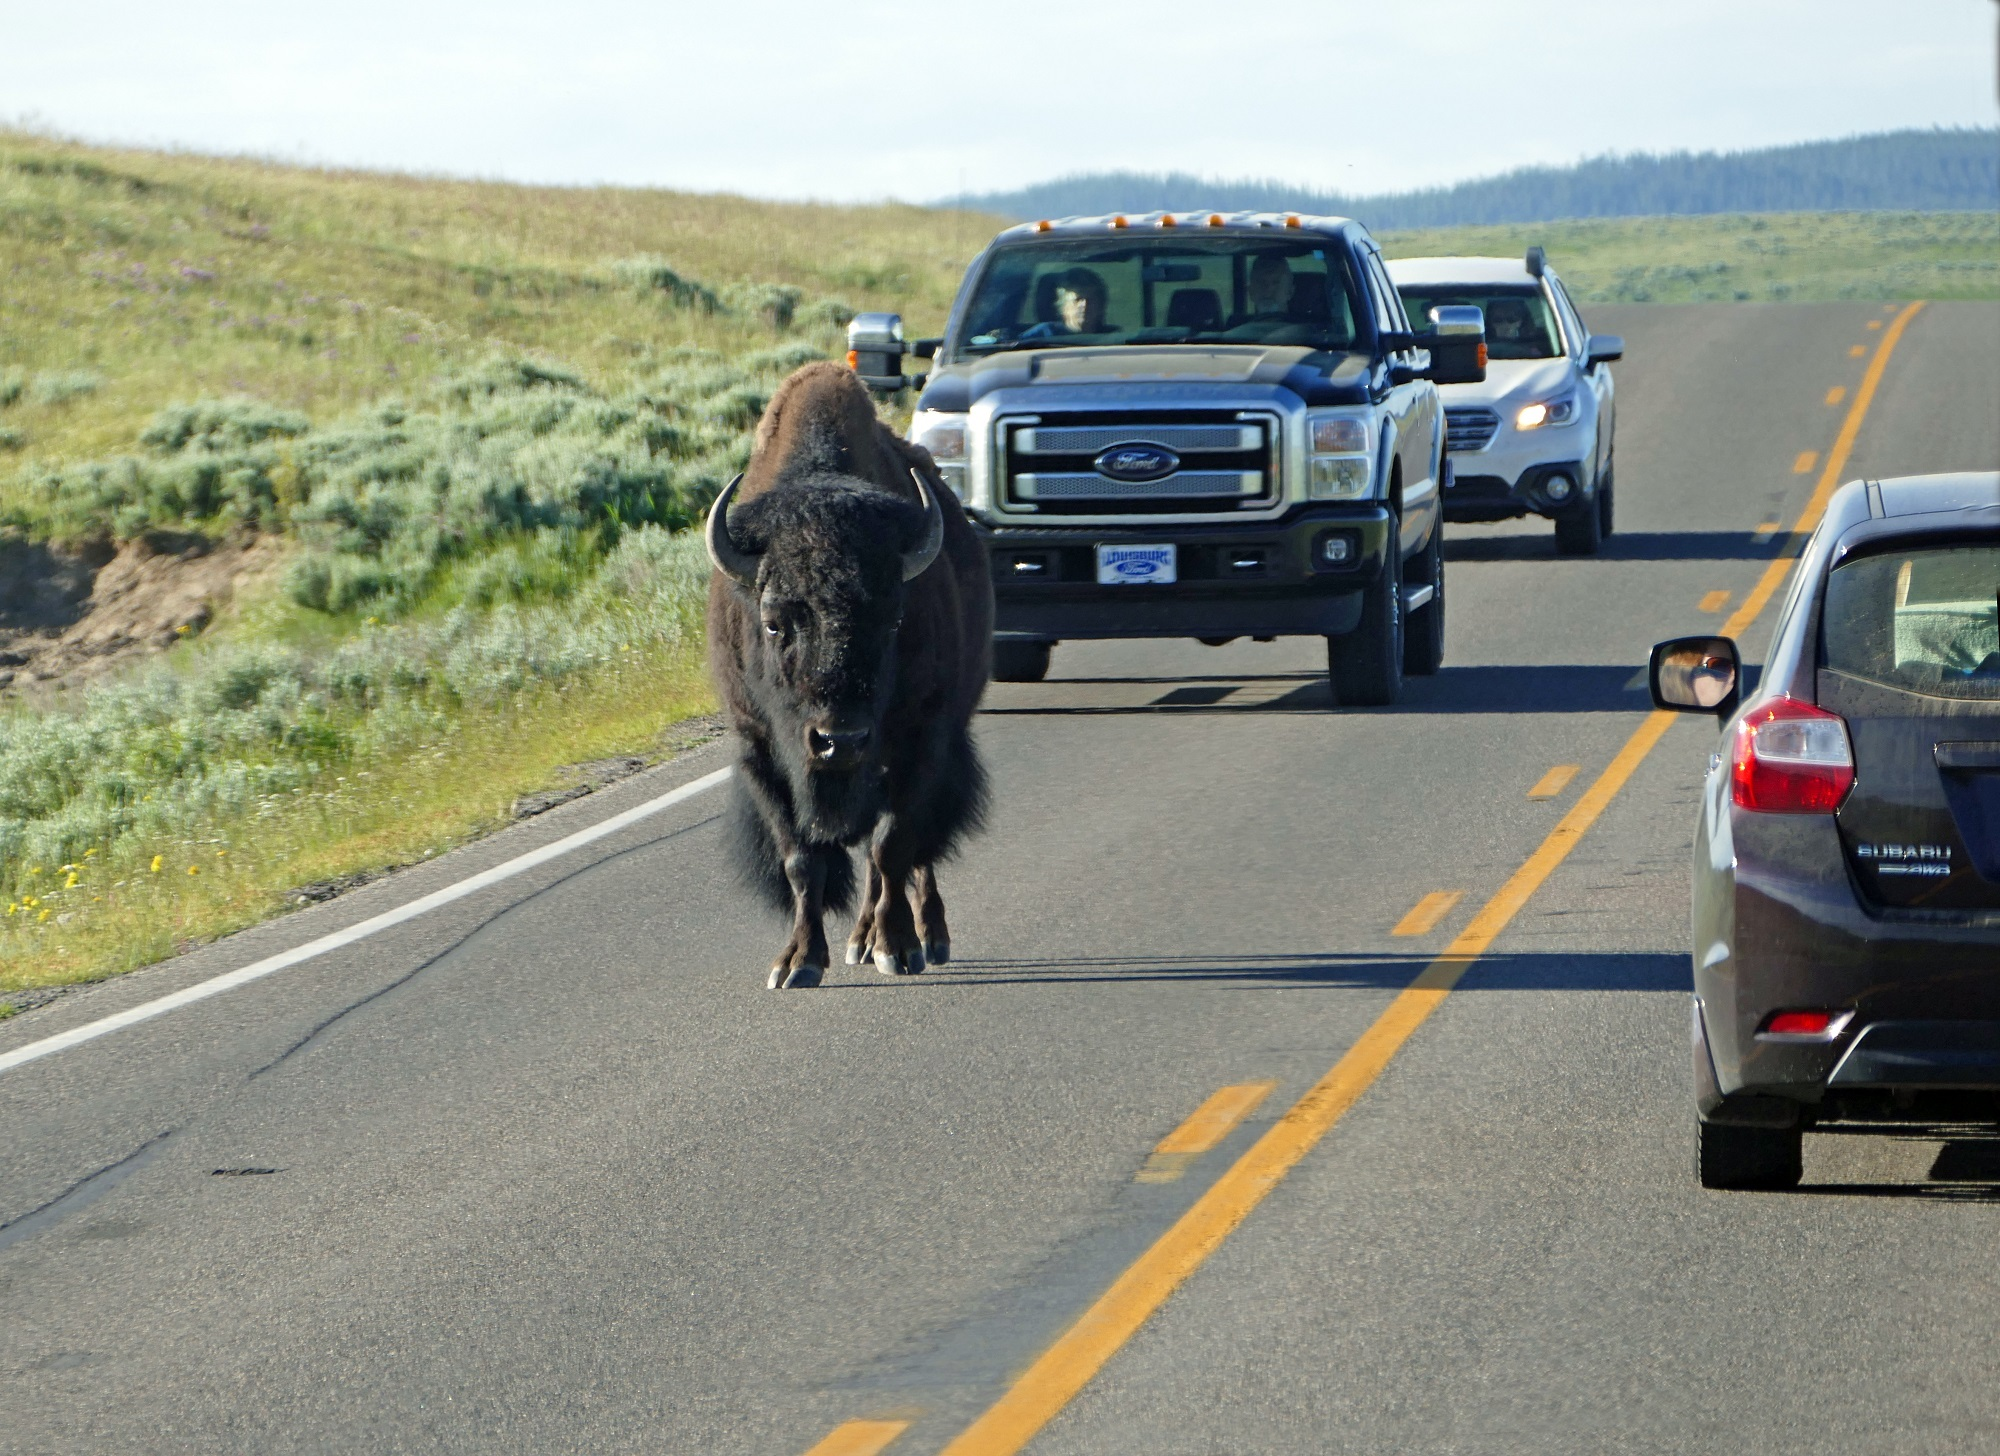 Buffalo on the highway, Animal, Buffalo, Car, Highway, HQ Photo